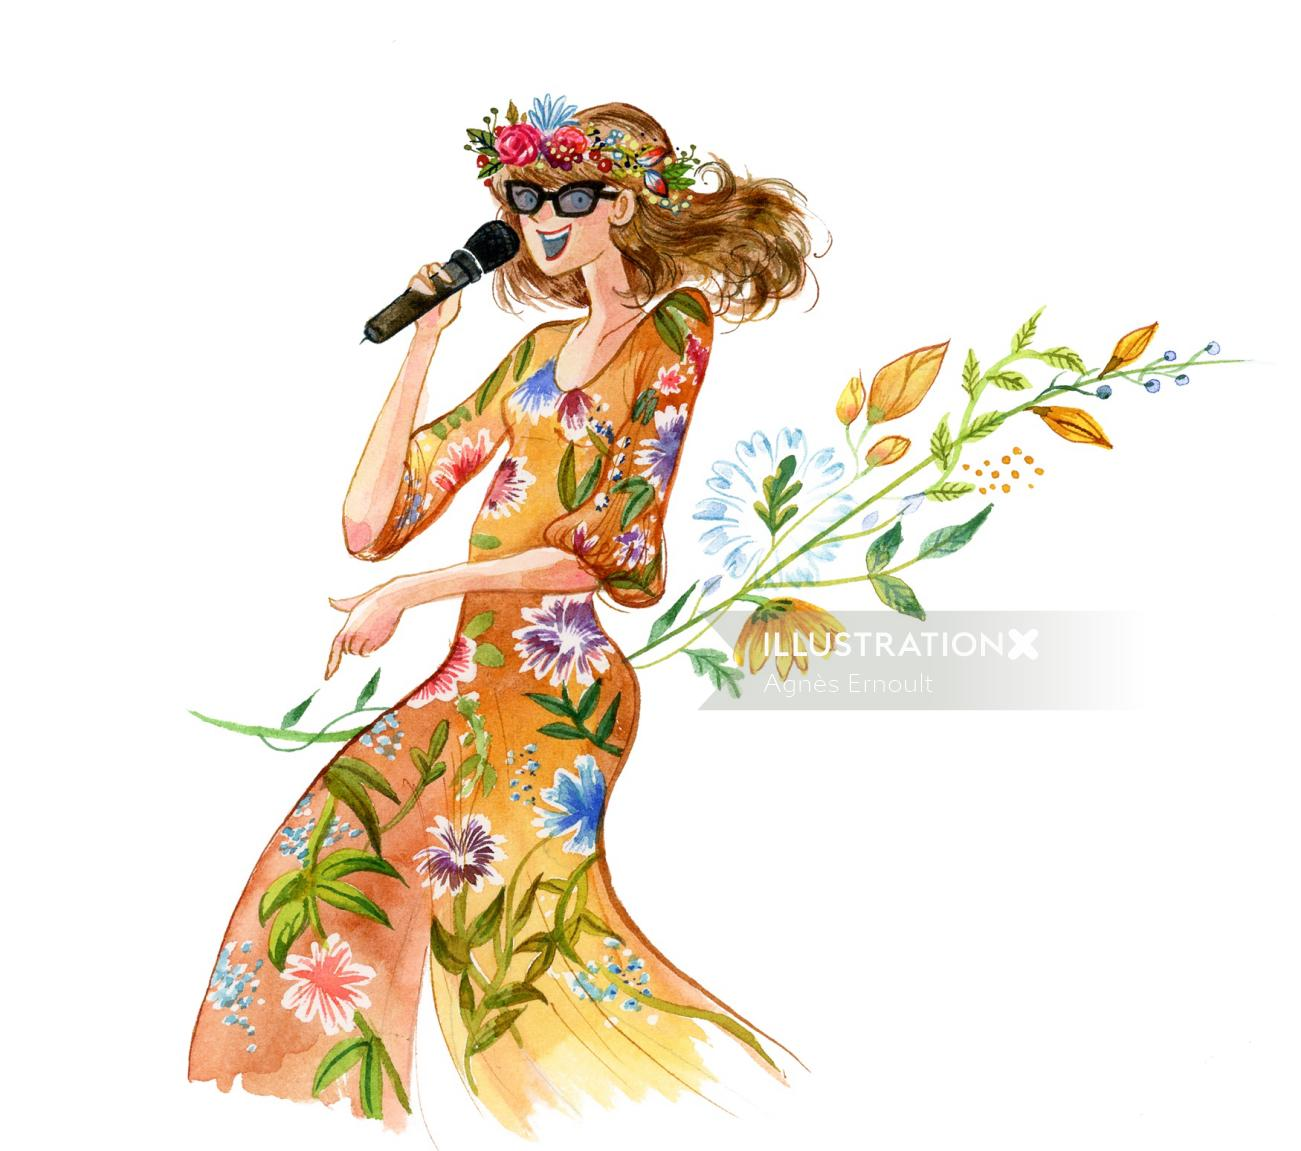 Fashion illustration of female wedding singer floral dress